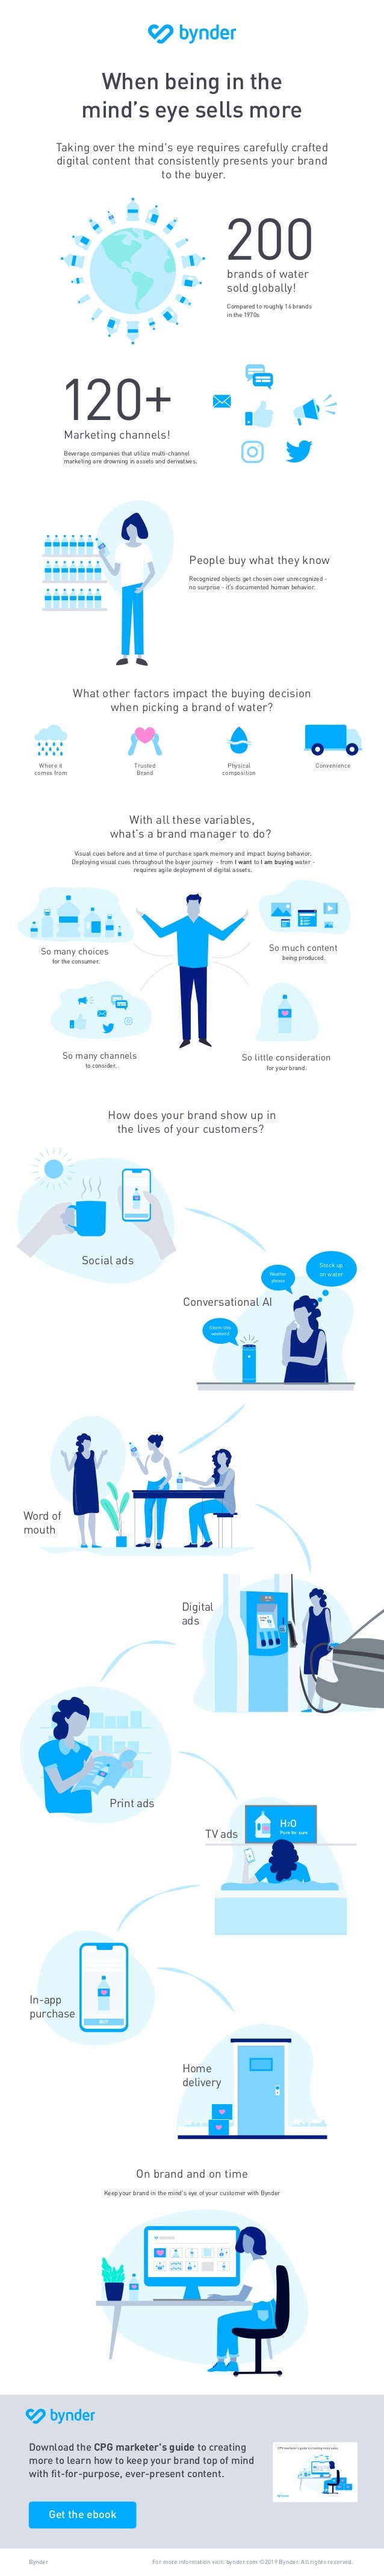 Bynder For more information visit: bynder.com ©2019 Bynder. All rights reserved. Download the CPG marketer's guide to crea...